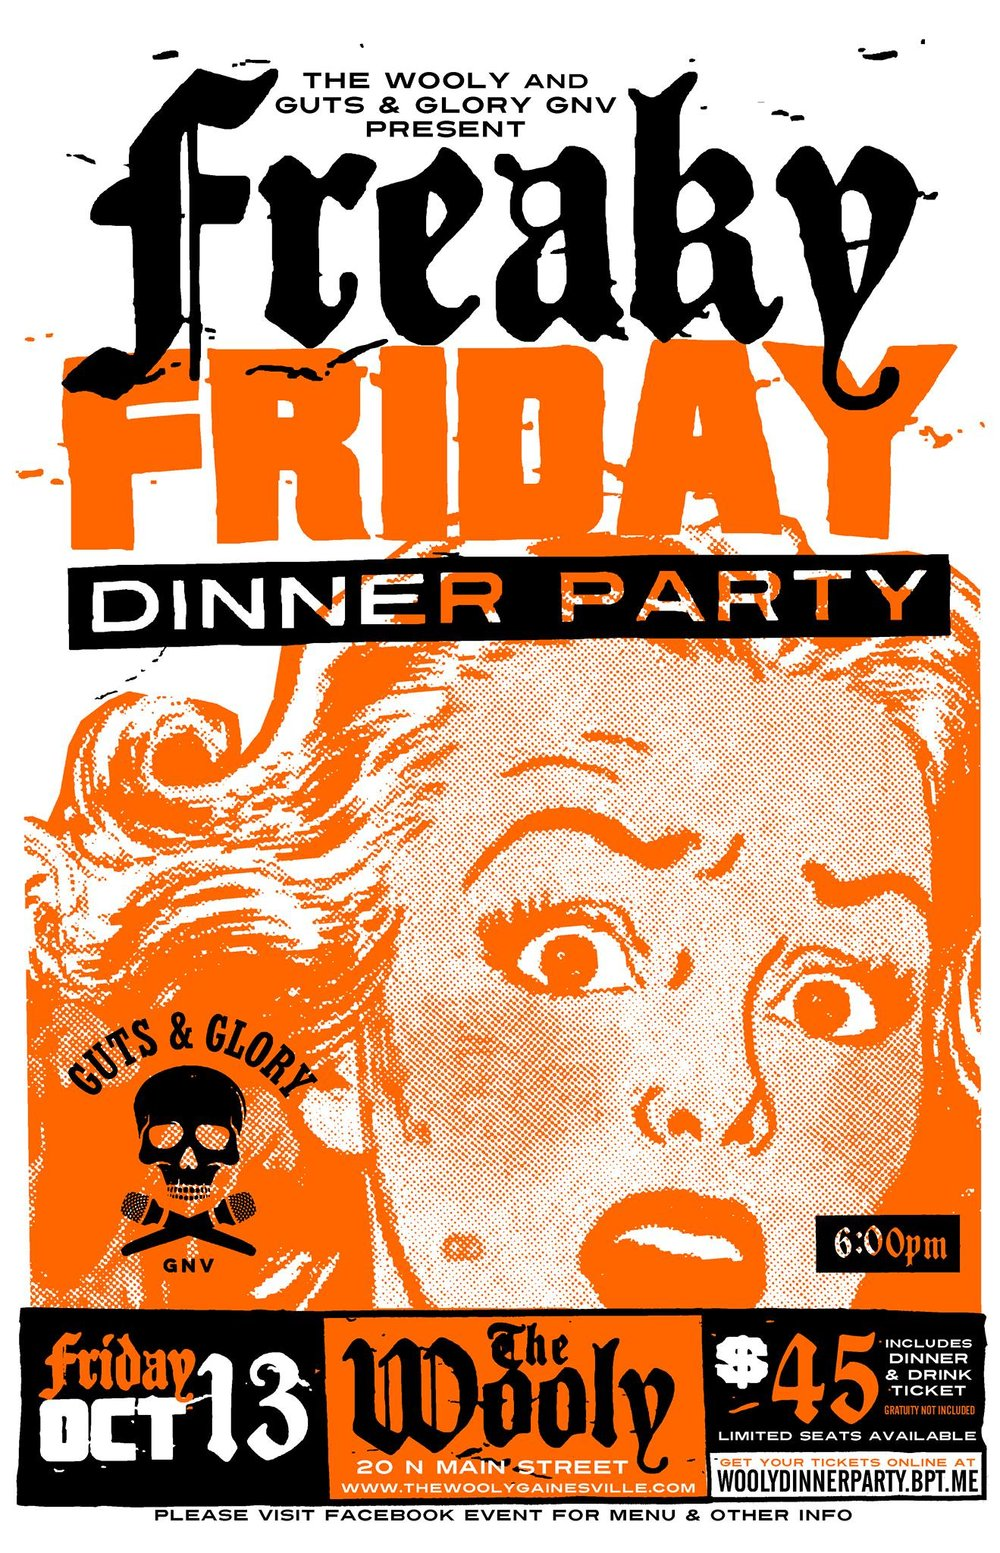 "Come enjoy dinner and a show at The Wooly Featuring Guts & Glory GNV! Tickets are only for sale online at: http://woolydinnerparty.bpt.me/ It's Friday the 13th so we are getting spooky with our food and entertainment. Dinner served buffet style Hor D'oeuvres: Brie, crackers, salami and grapes Deviled eggs Black bean hummus and pita Entree/Sides: Fried chicken Mushroom and spinach ravioli Vegan stuffed peppers Vegan spicy roasted cauliflower Sweet potato fries Garlic butter/bread Dessert: ""Bobbing"" for Caramel apples Vegan spooky cupcakes Your ticket includes a drink. Servers will be available to take your drink orders throughout the night. Guts & Glory GNV will present a special Friday the 13th/Halloween version of their Pants on Fire series! 21+ only Friday, 13 October 2017 at 6pm 6-7pm - cocktail social hour 7pm - food served at buffet for guests 7:30pm - show starts Limited tickets available, so get yours now!"